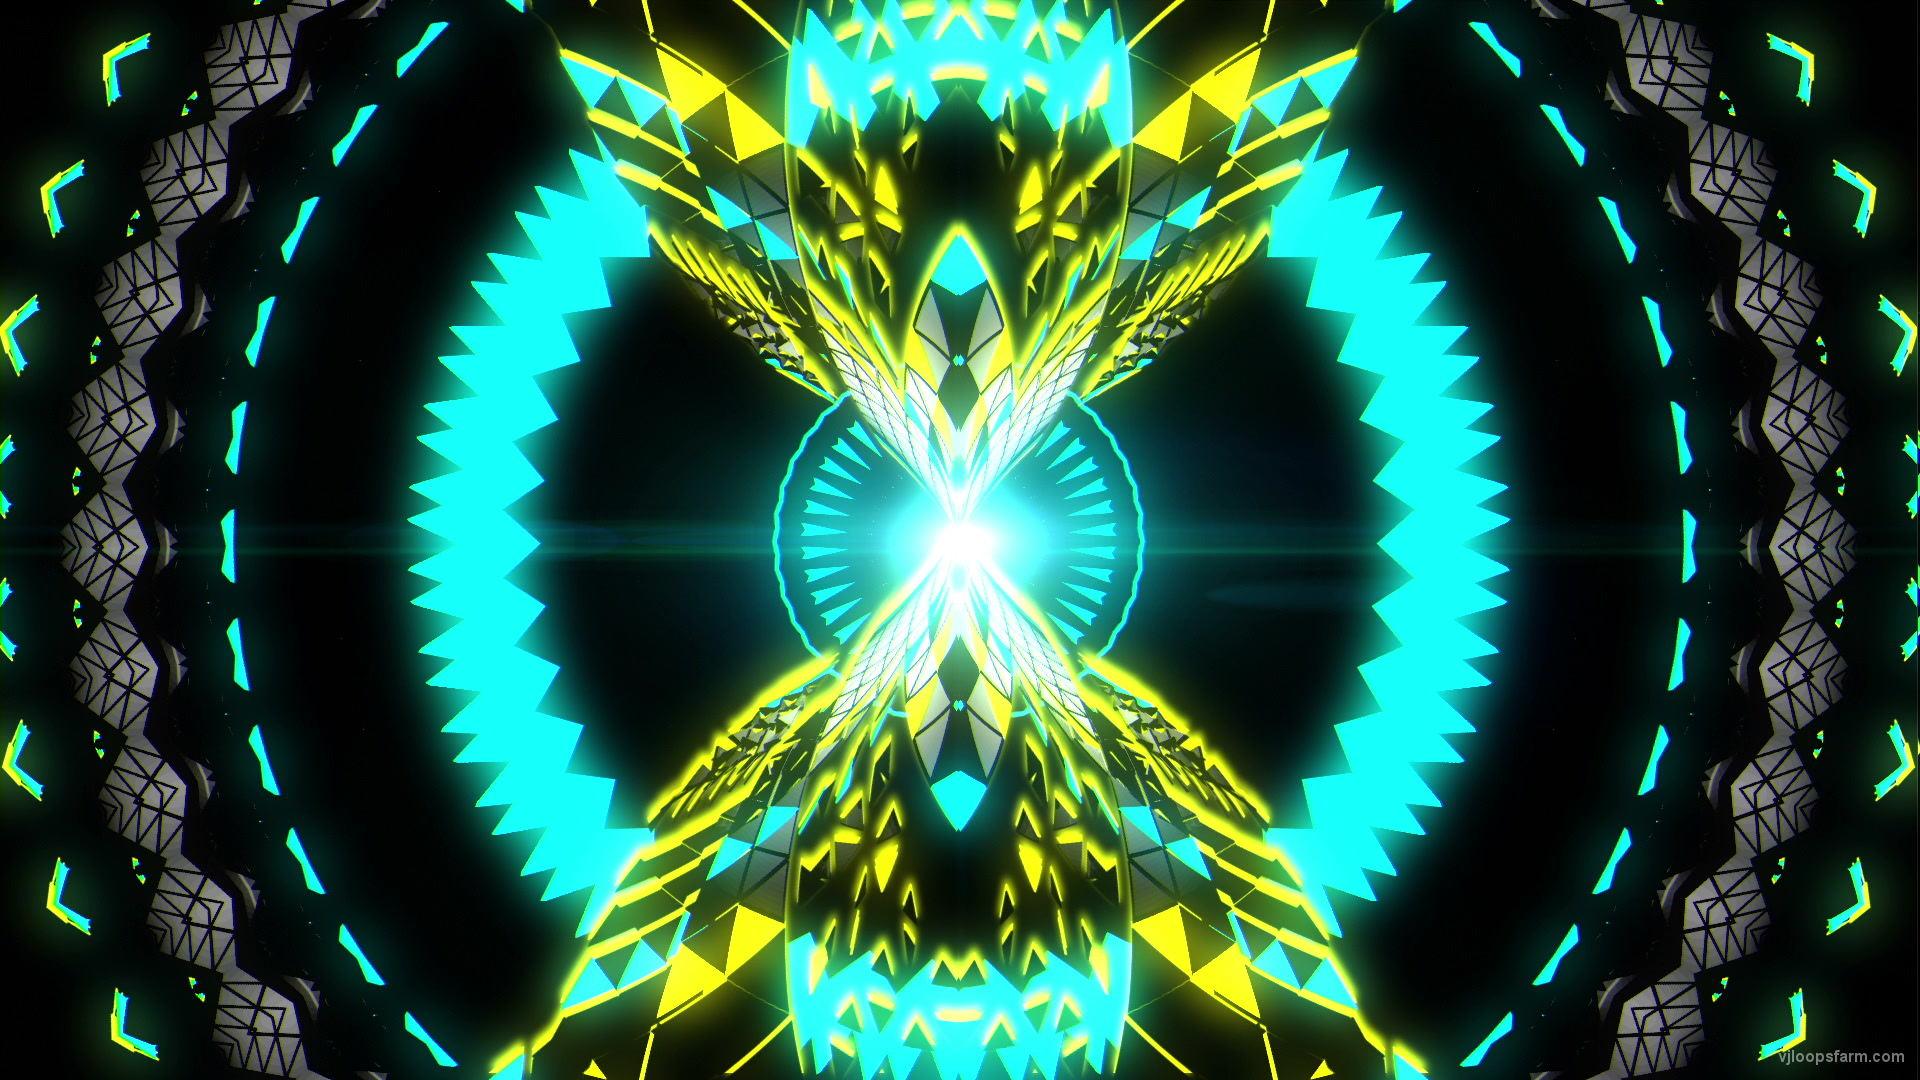 vj video background EDM-Bridge-LIMEART-Space-X_1_1920x1080_60fps_VJLoop_LIMEART_003